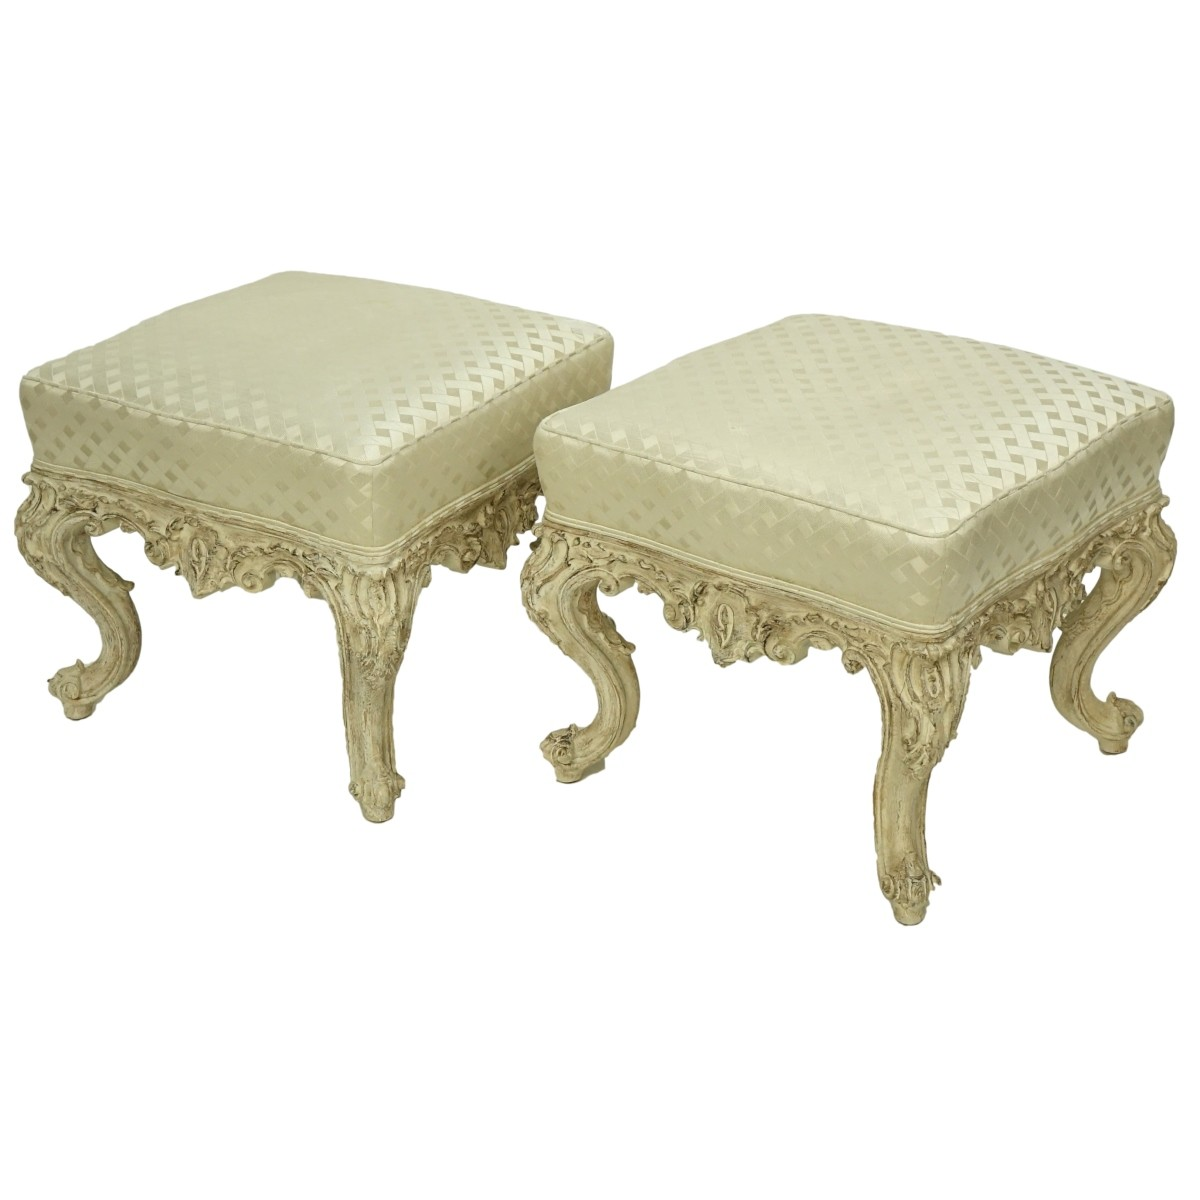 Pair of Louis XV Style Upholstered Benches